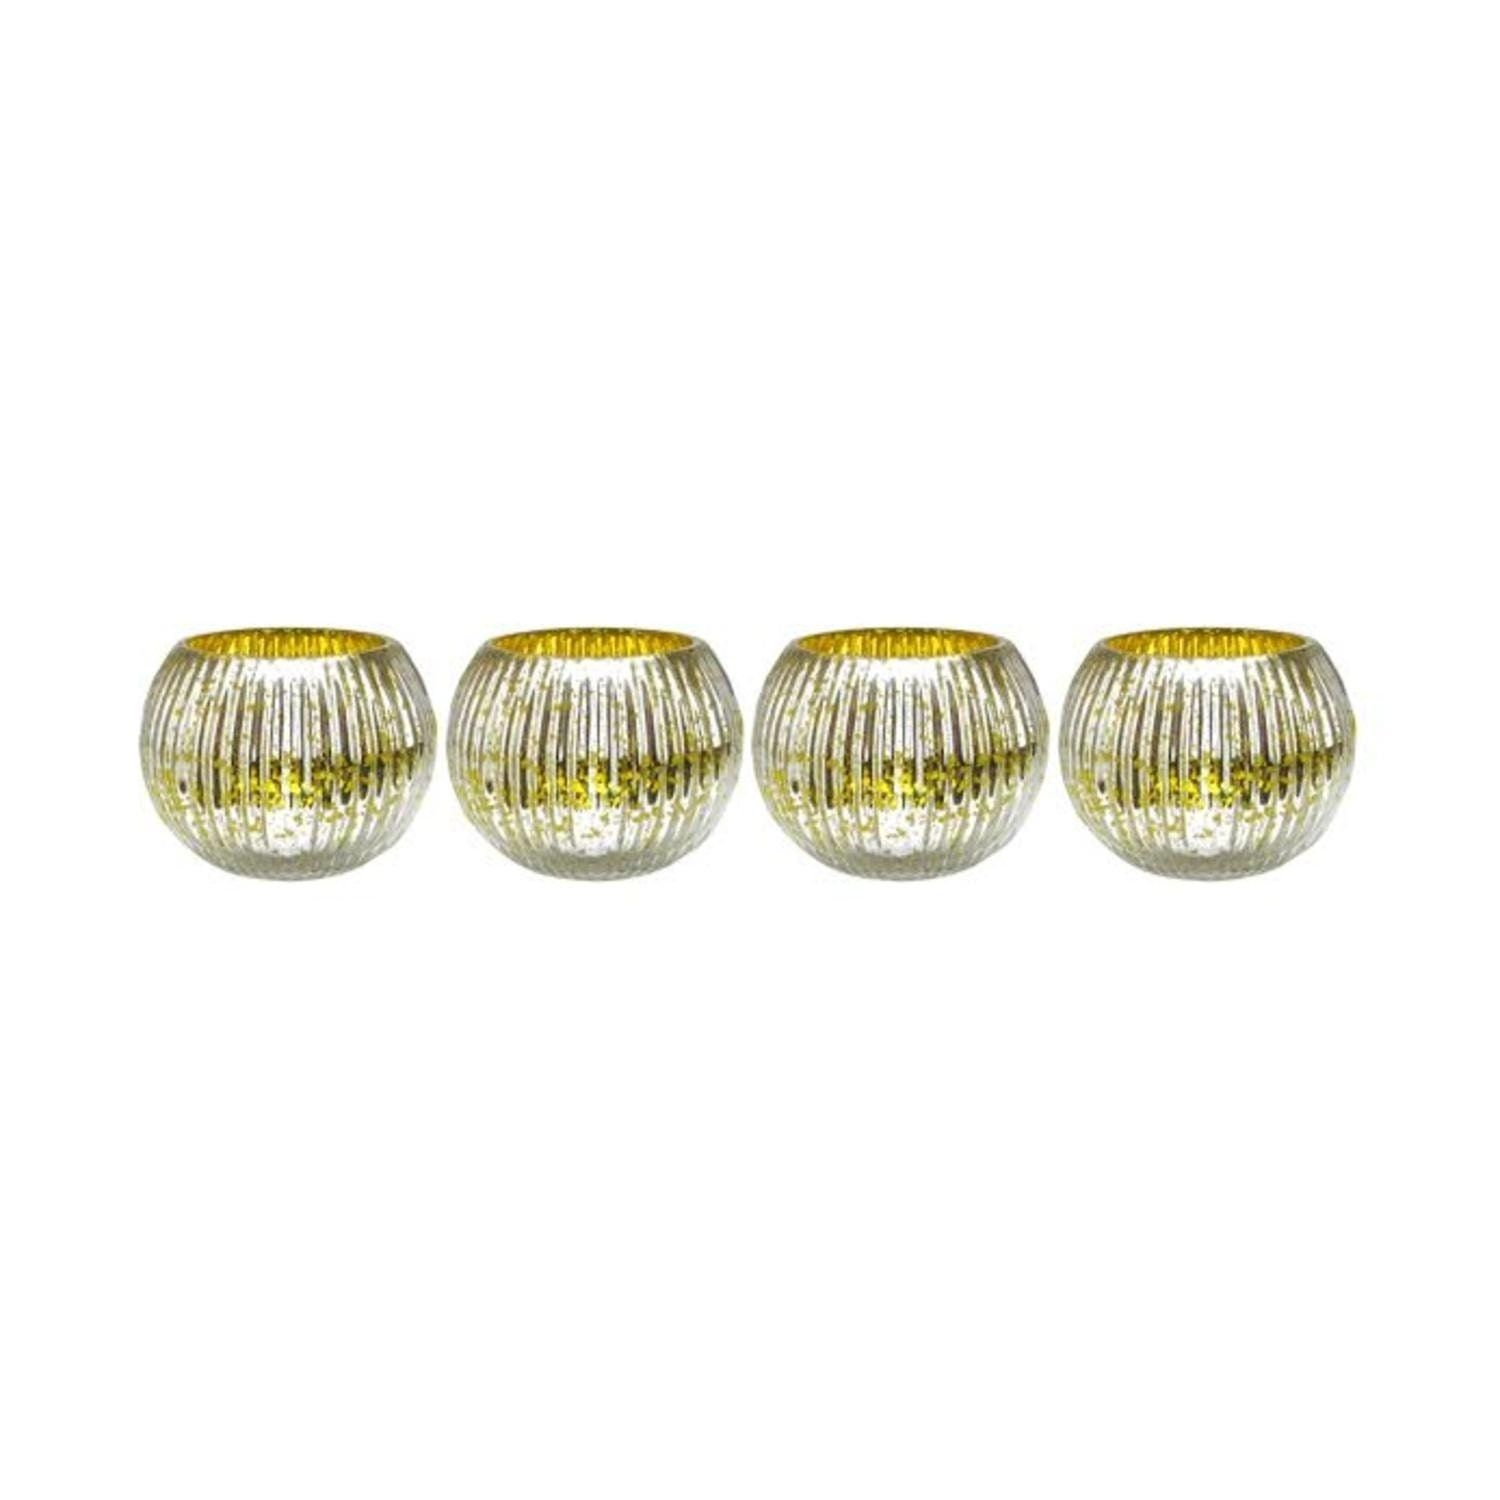 Set of yellow and silver ribbed round mercury glass decorative